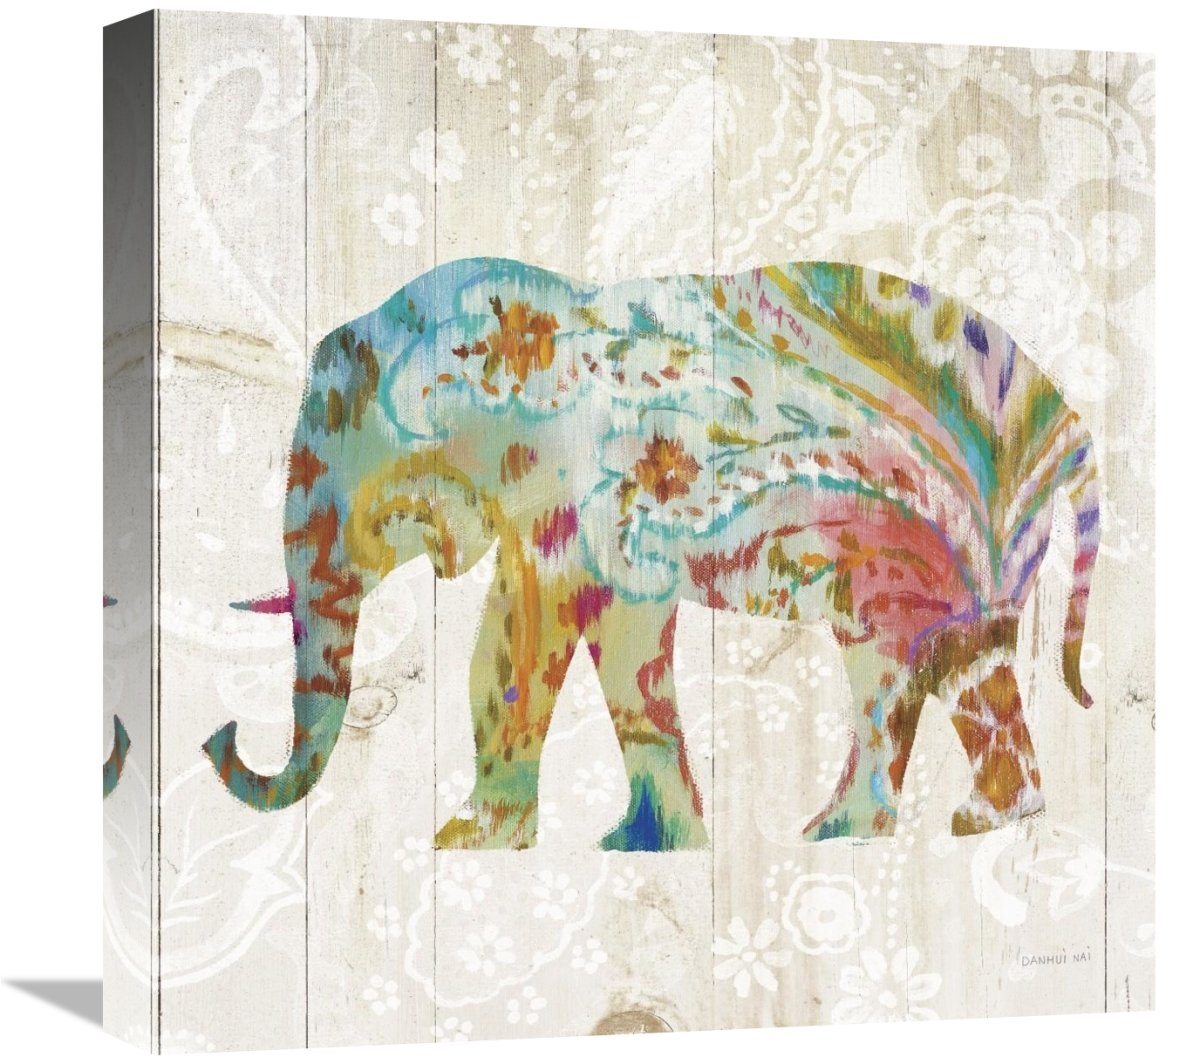 Global Gallery Danhui NAI Boho Paisley Elephant II Giclee Stretched Canvas Artwork 18 x 18